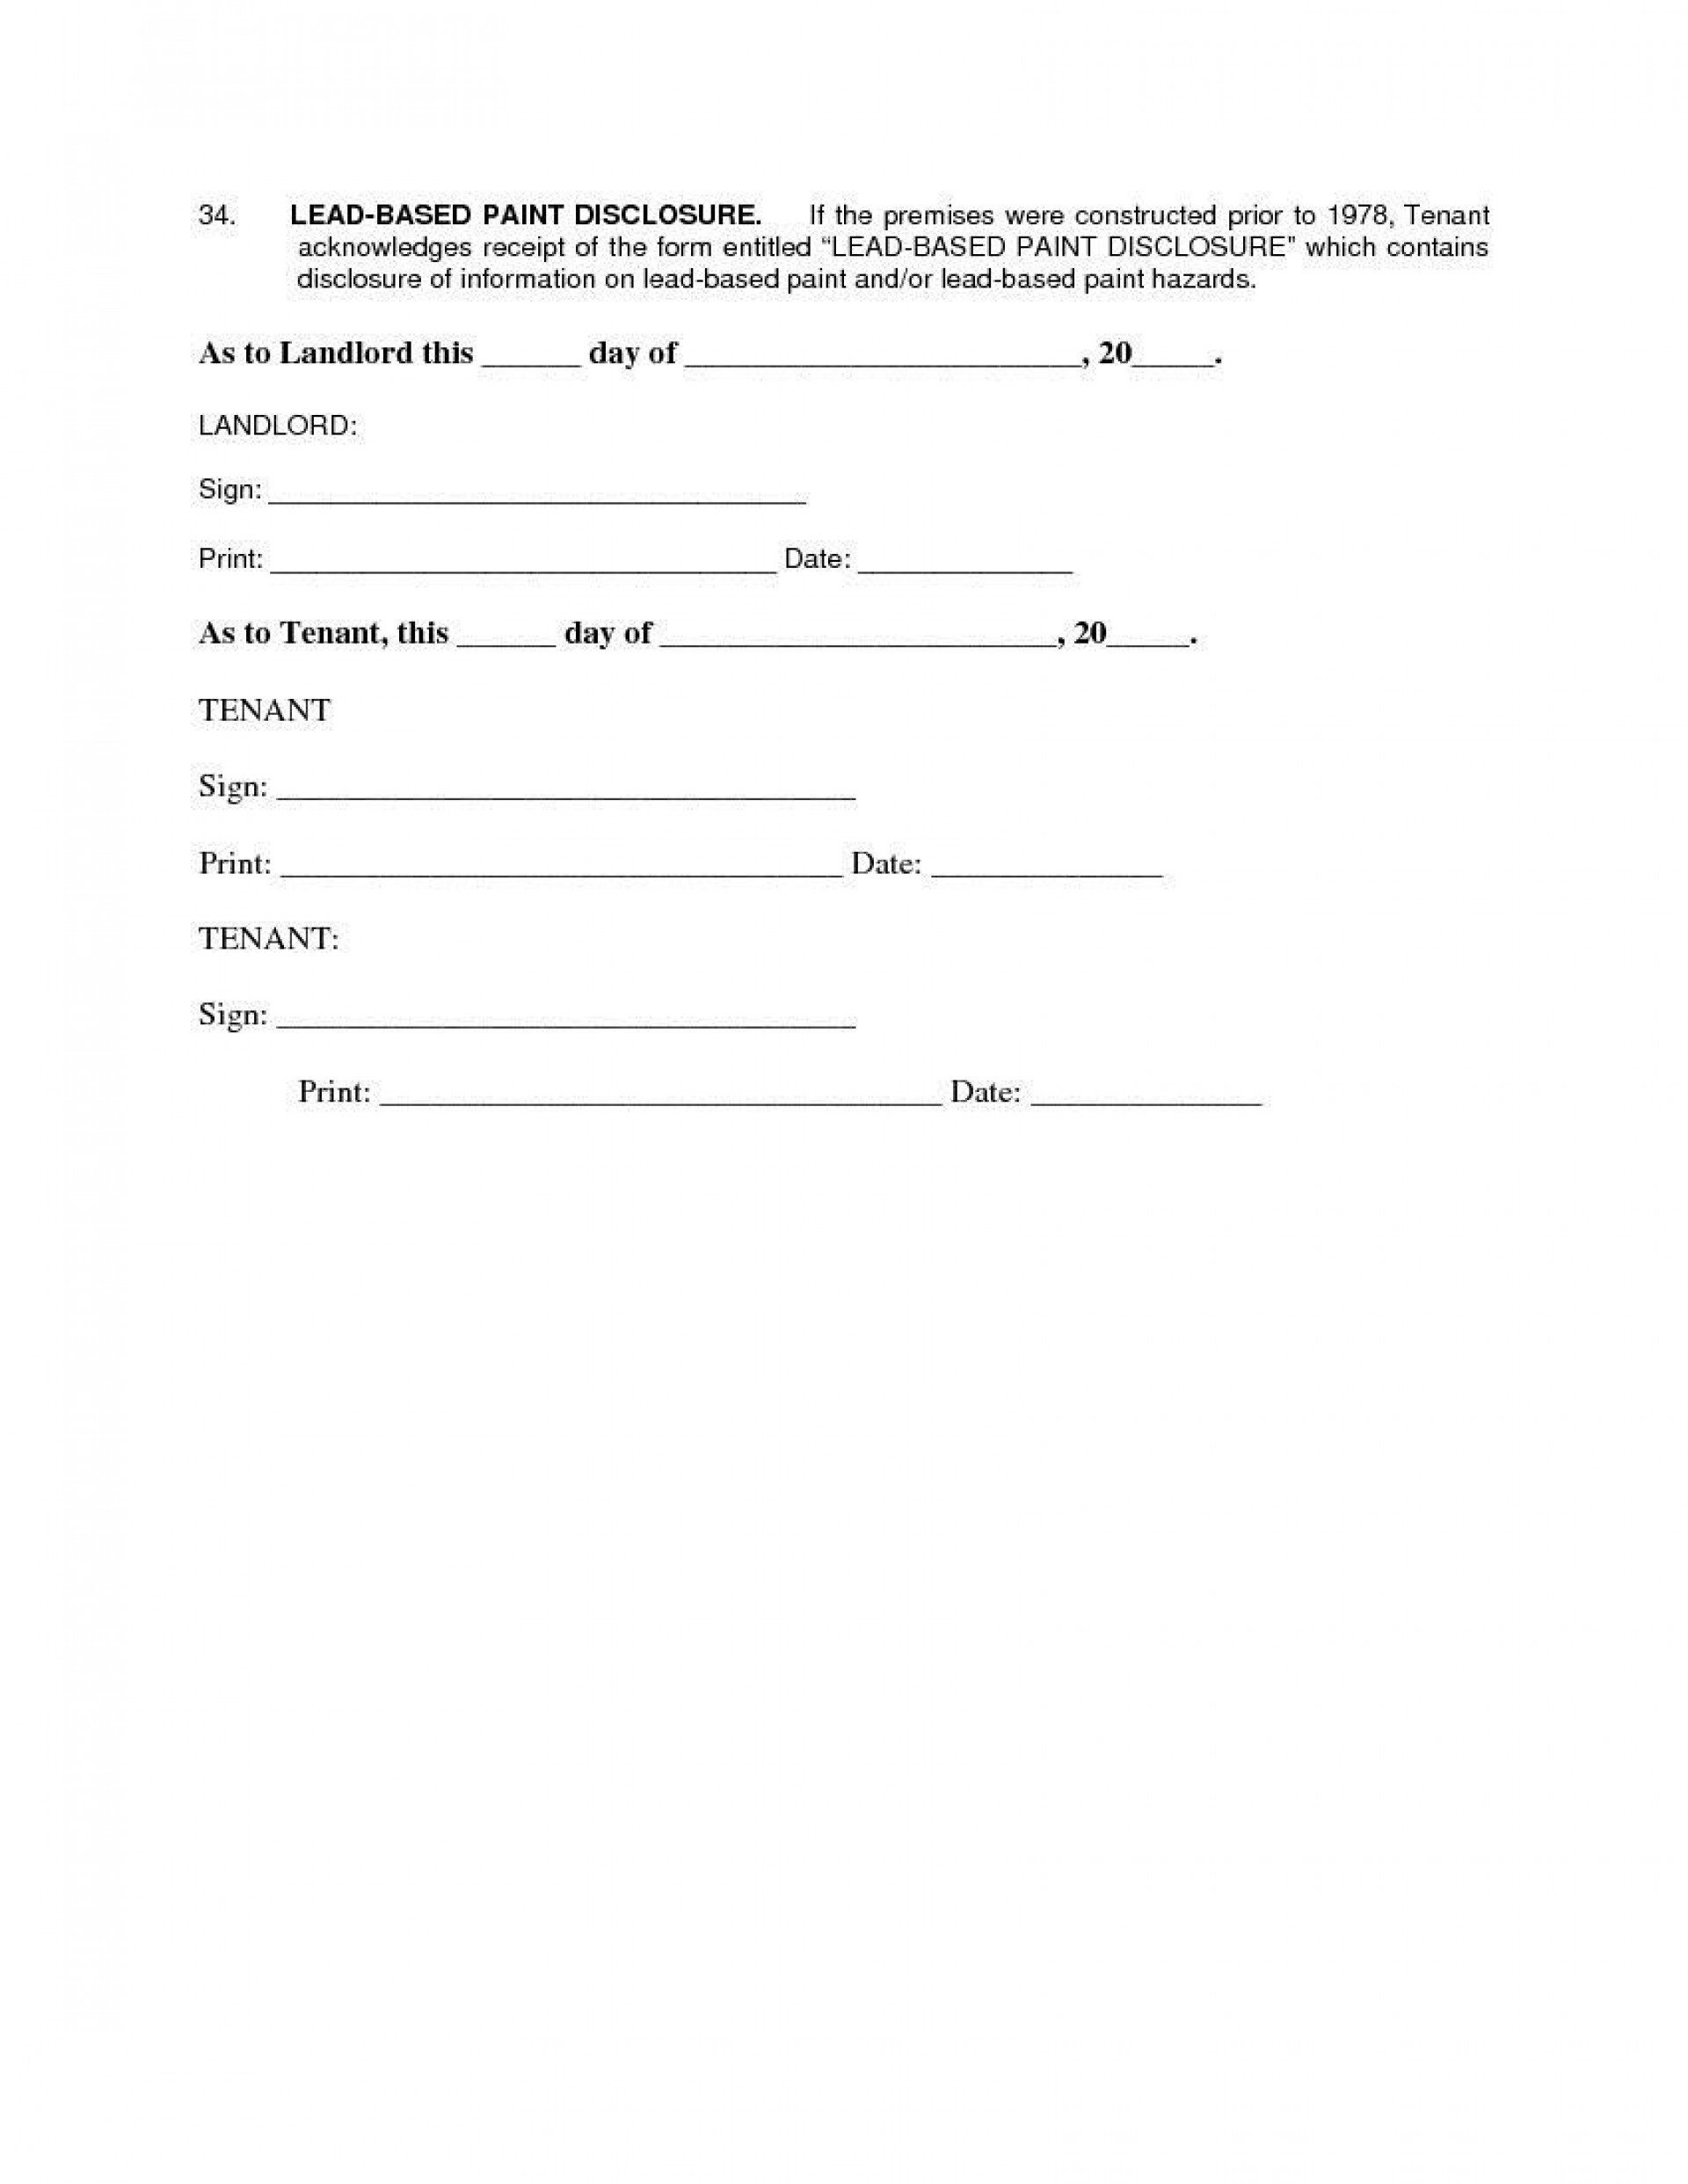 007 Remarkable Apartment Lease Agreement Form Texa High Def 1920